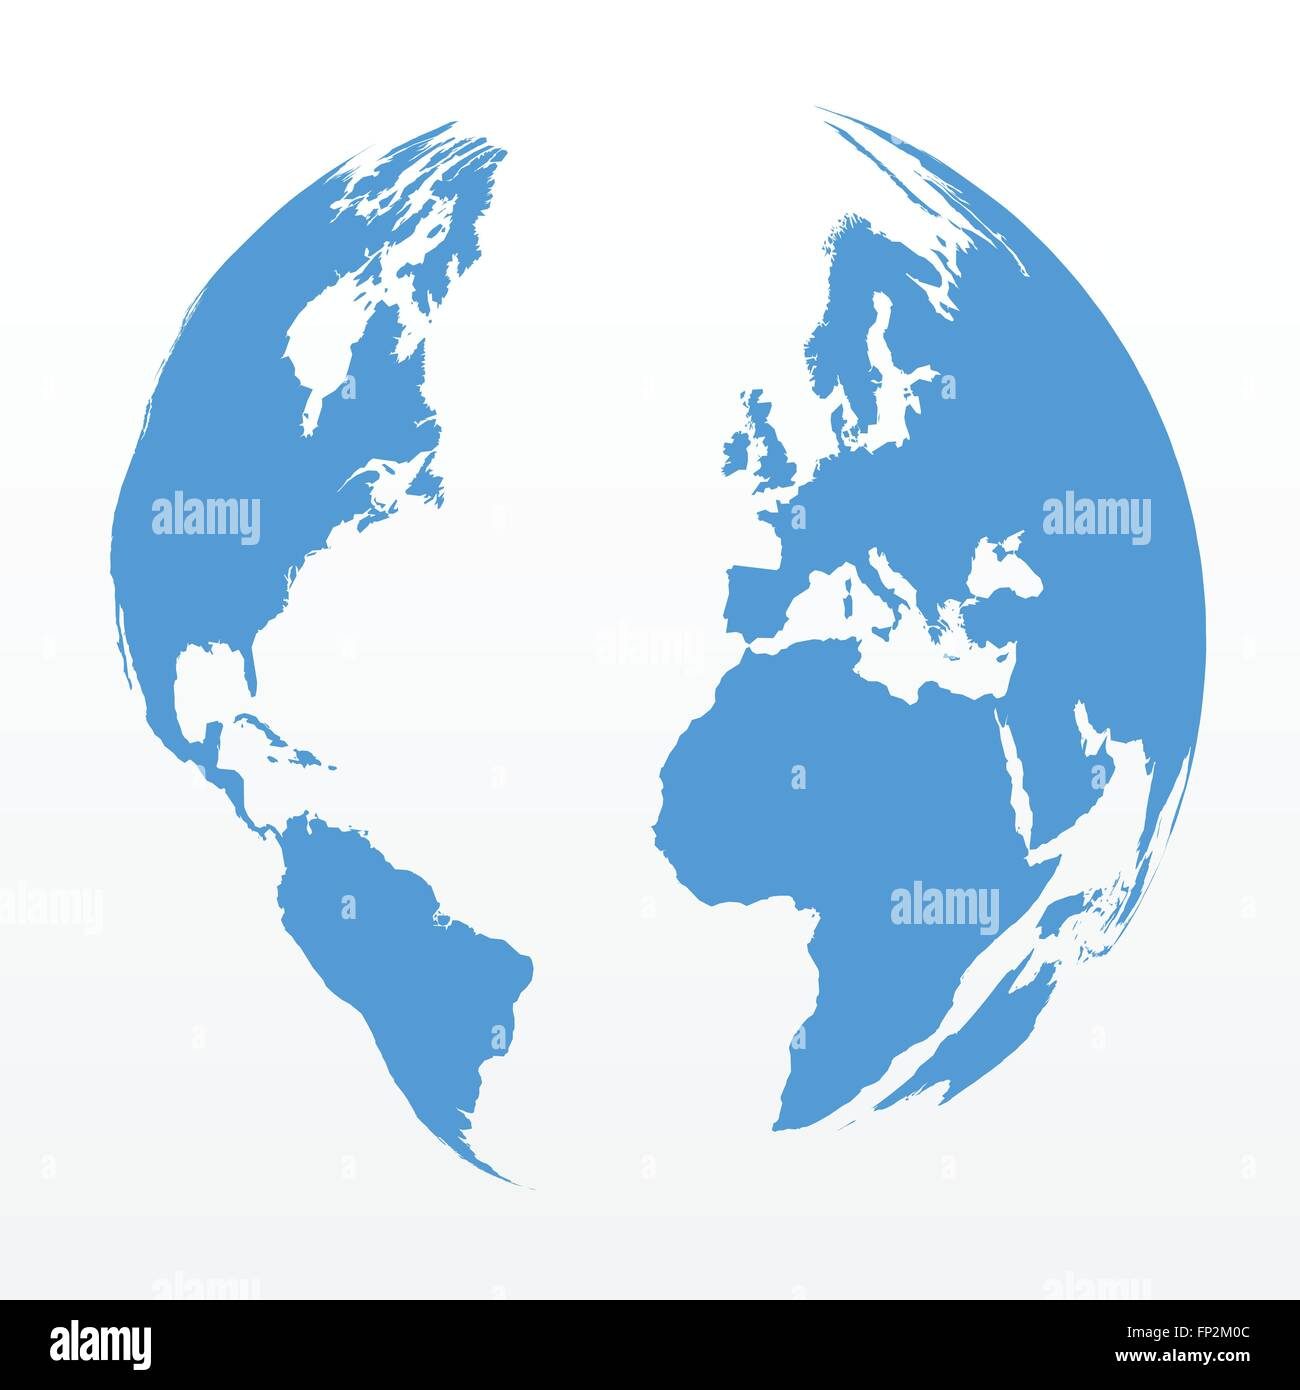 Illustration of a world map sphere isolated on a white background illustration of a world map sphere isolated on a white background gumiabroncs Images